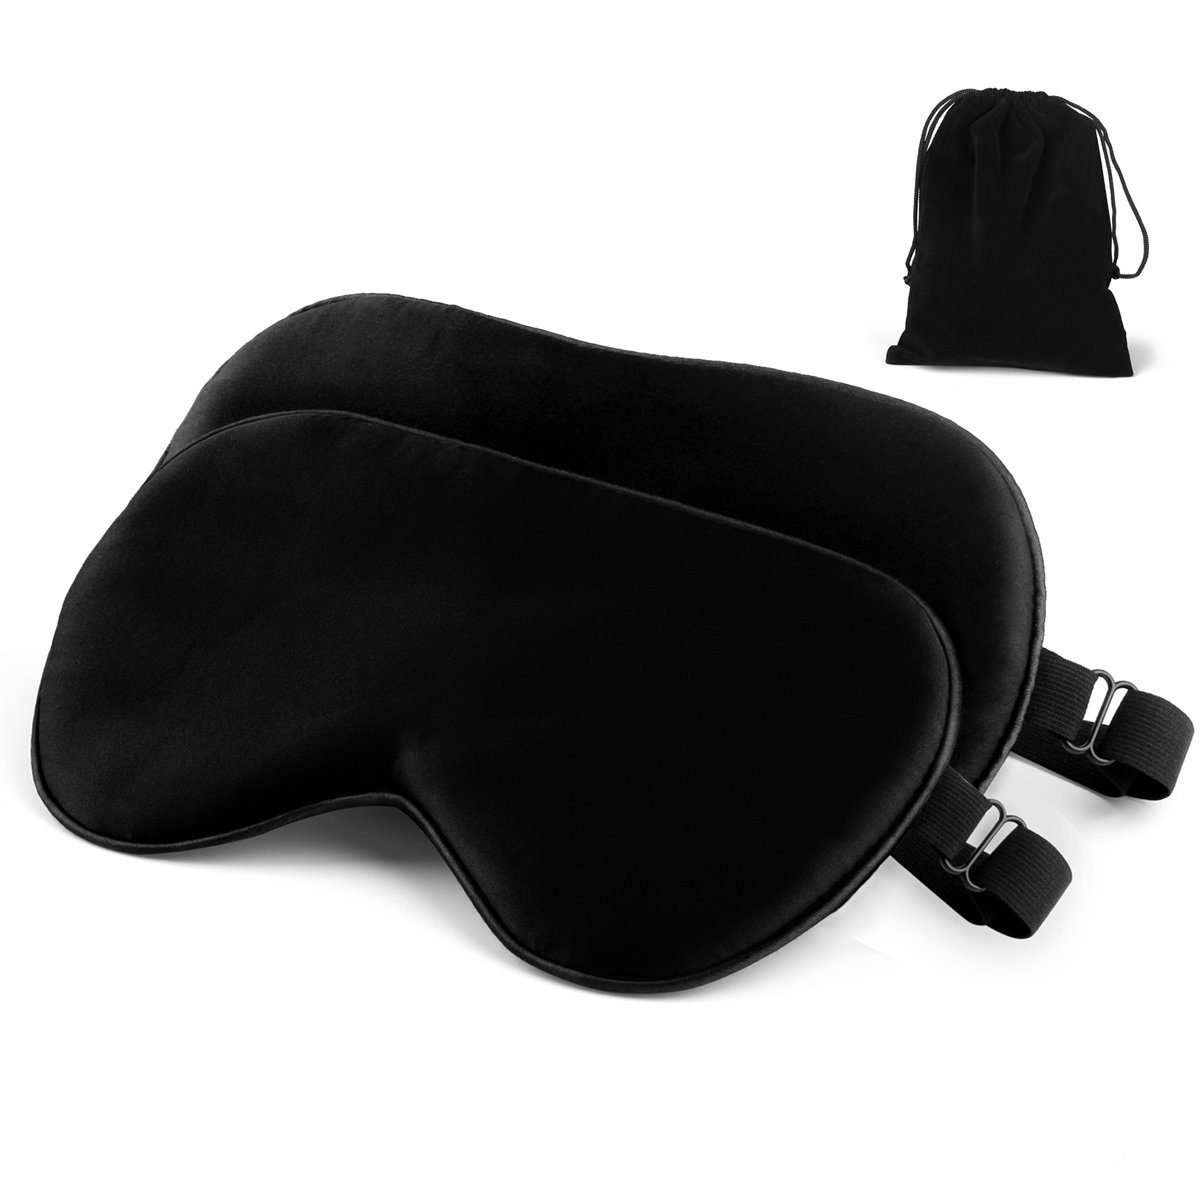 Silk Sleeping Blindfold Mask with Adjustable Strap Comfortable&Soft Eye Mask Washable,2 Pack(Black)